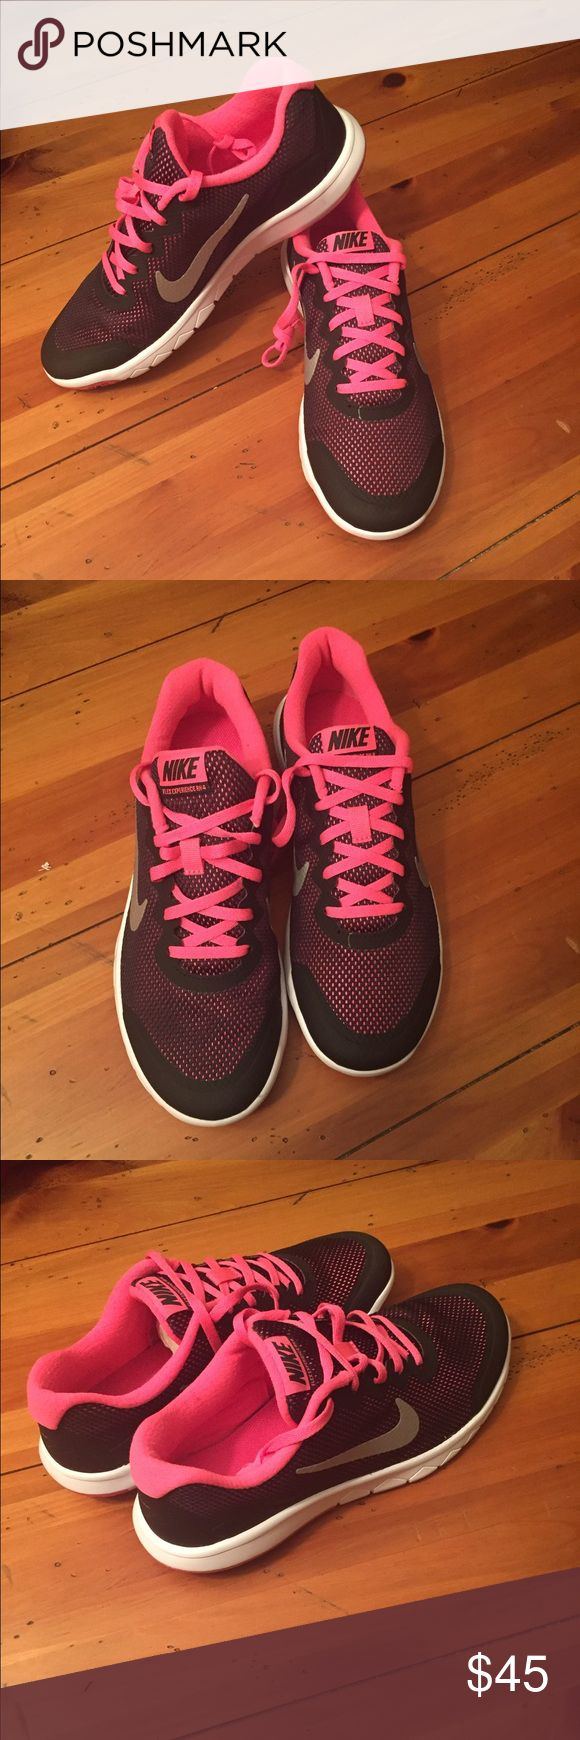 New Nike running shoes 🏃🏽‍♀️🏃🏽‍♀️ Brand new Nike shoes no box size 6y. Could easily fit woman's size 7. Please look at your CM size on your shoe can compare to the one on the picture. For accurate measurements. Any questions please let me know 😊 Nike Shoes Sneakers